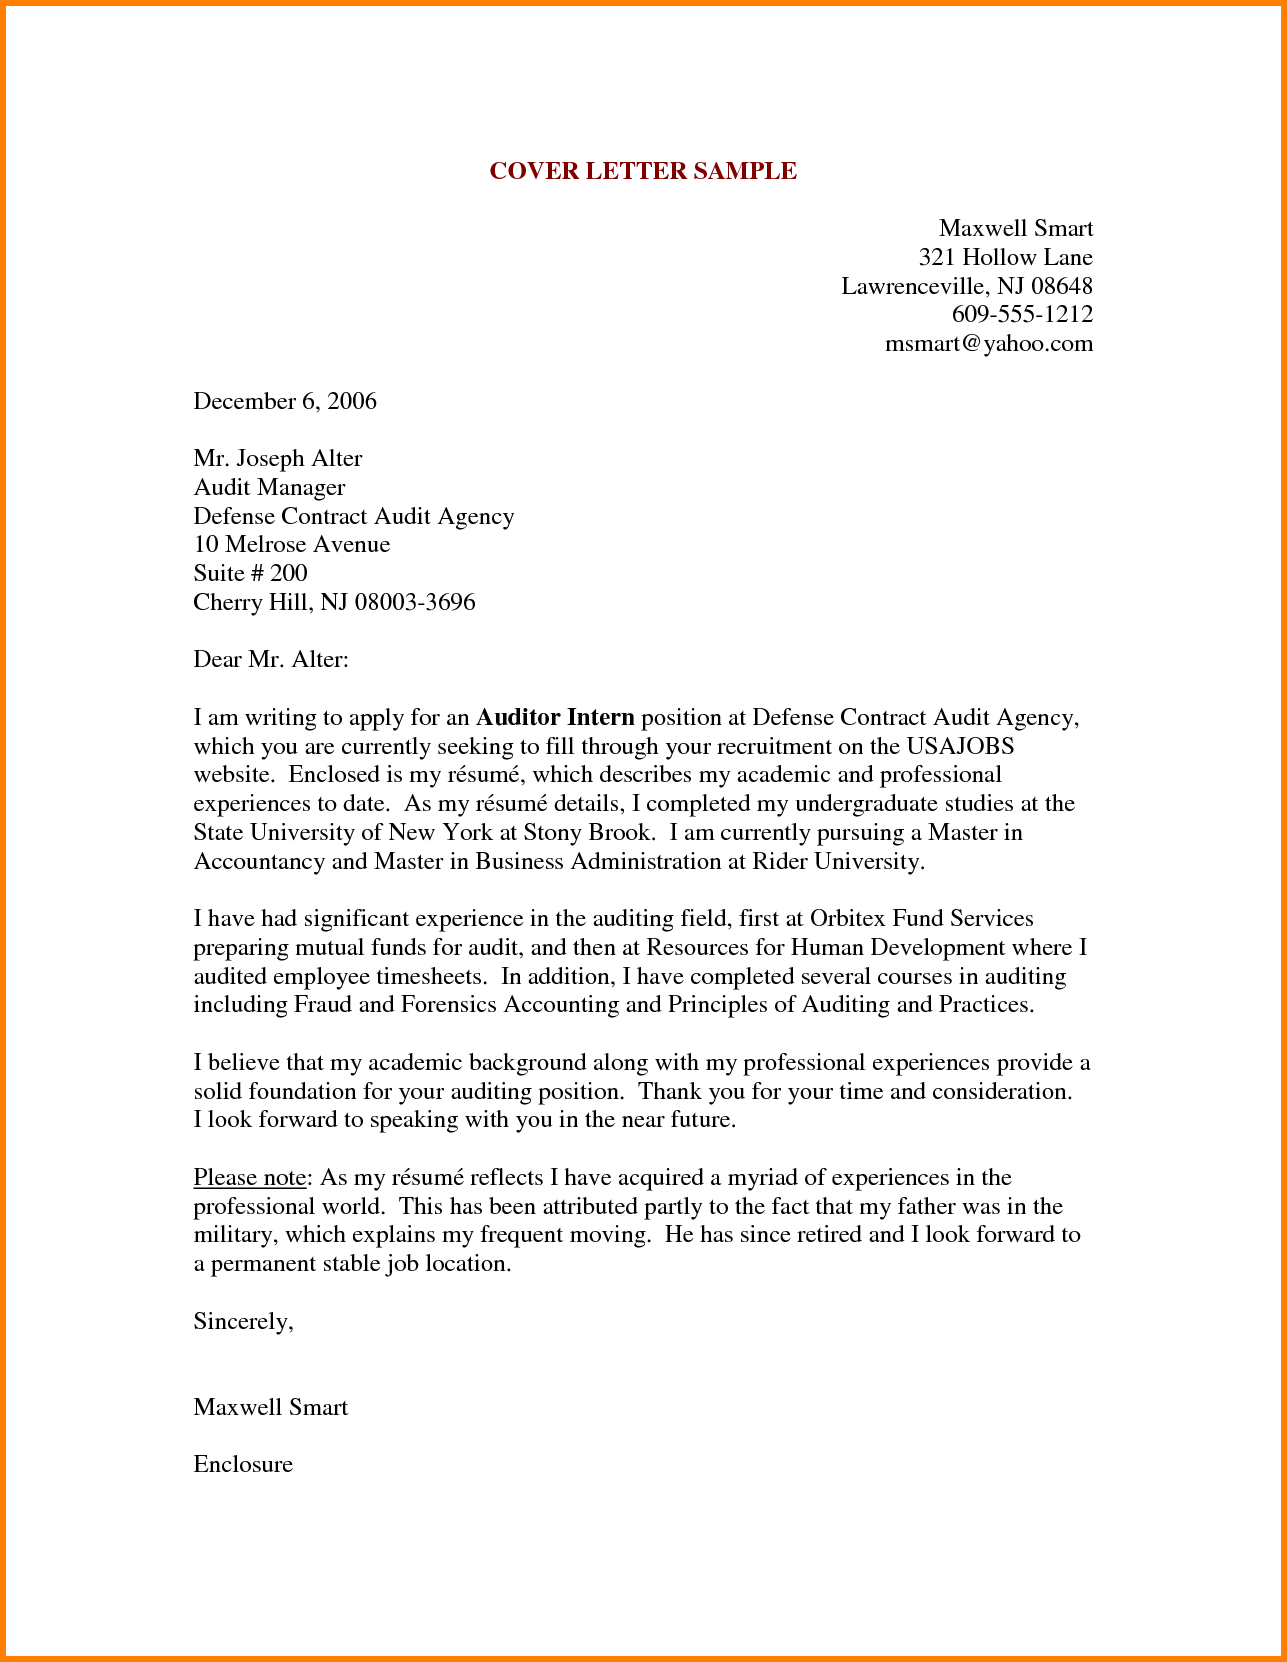 Independent Contractor Offer Letter Template Examples | Letter Templates